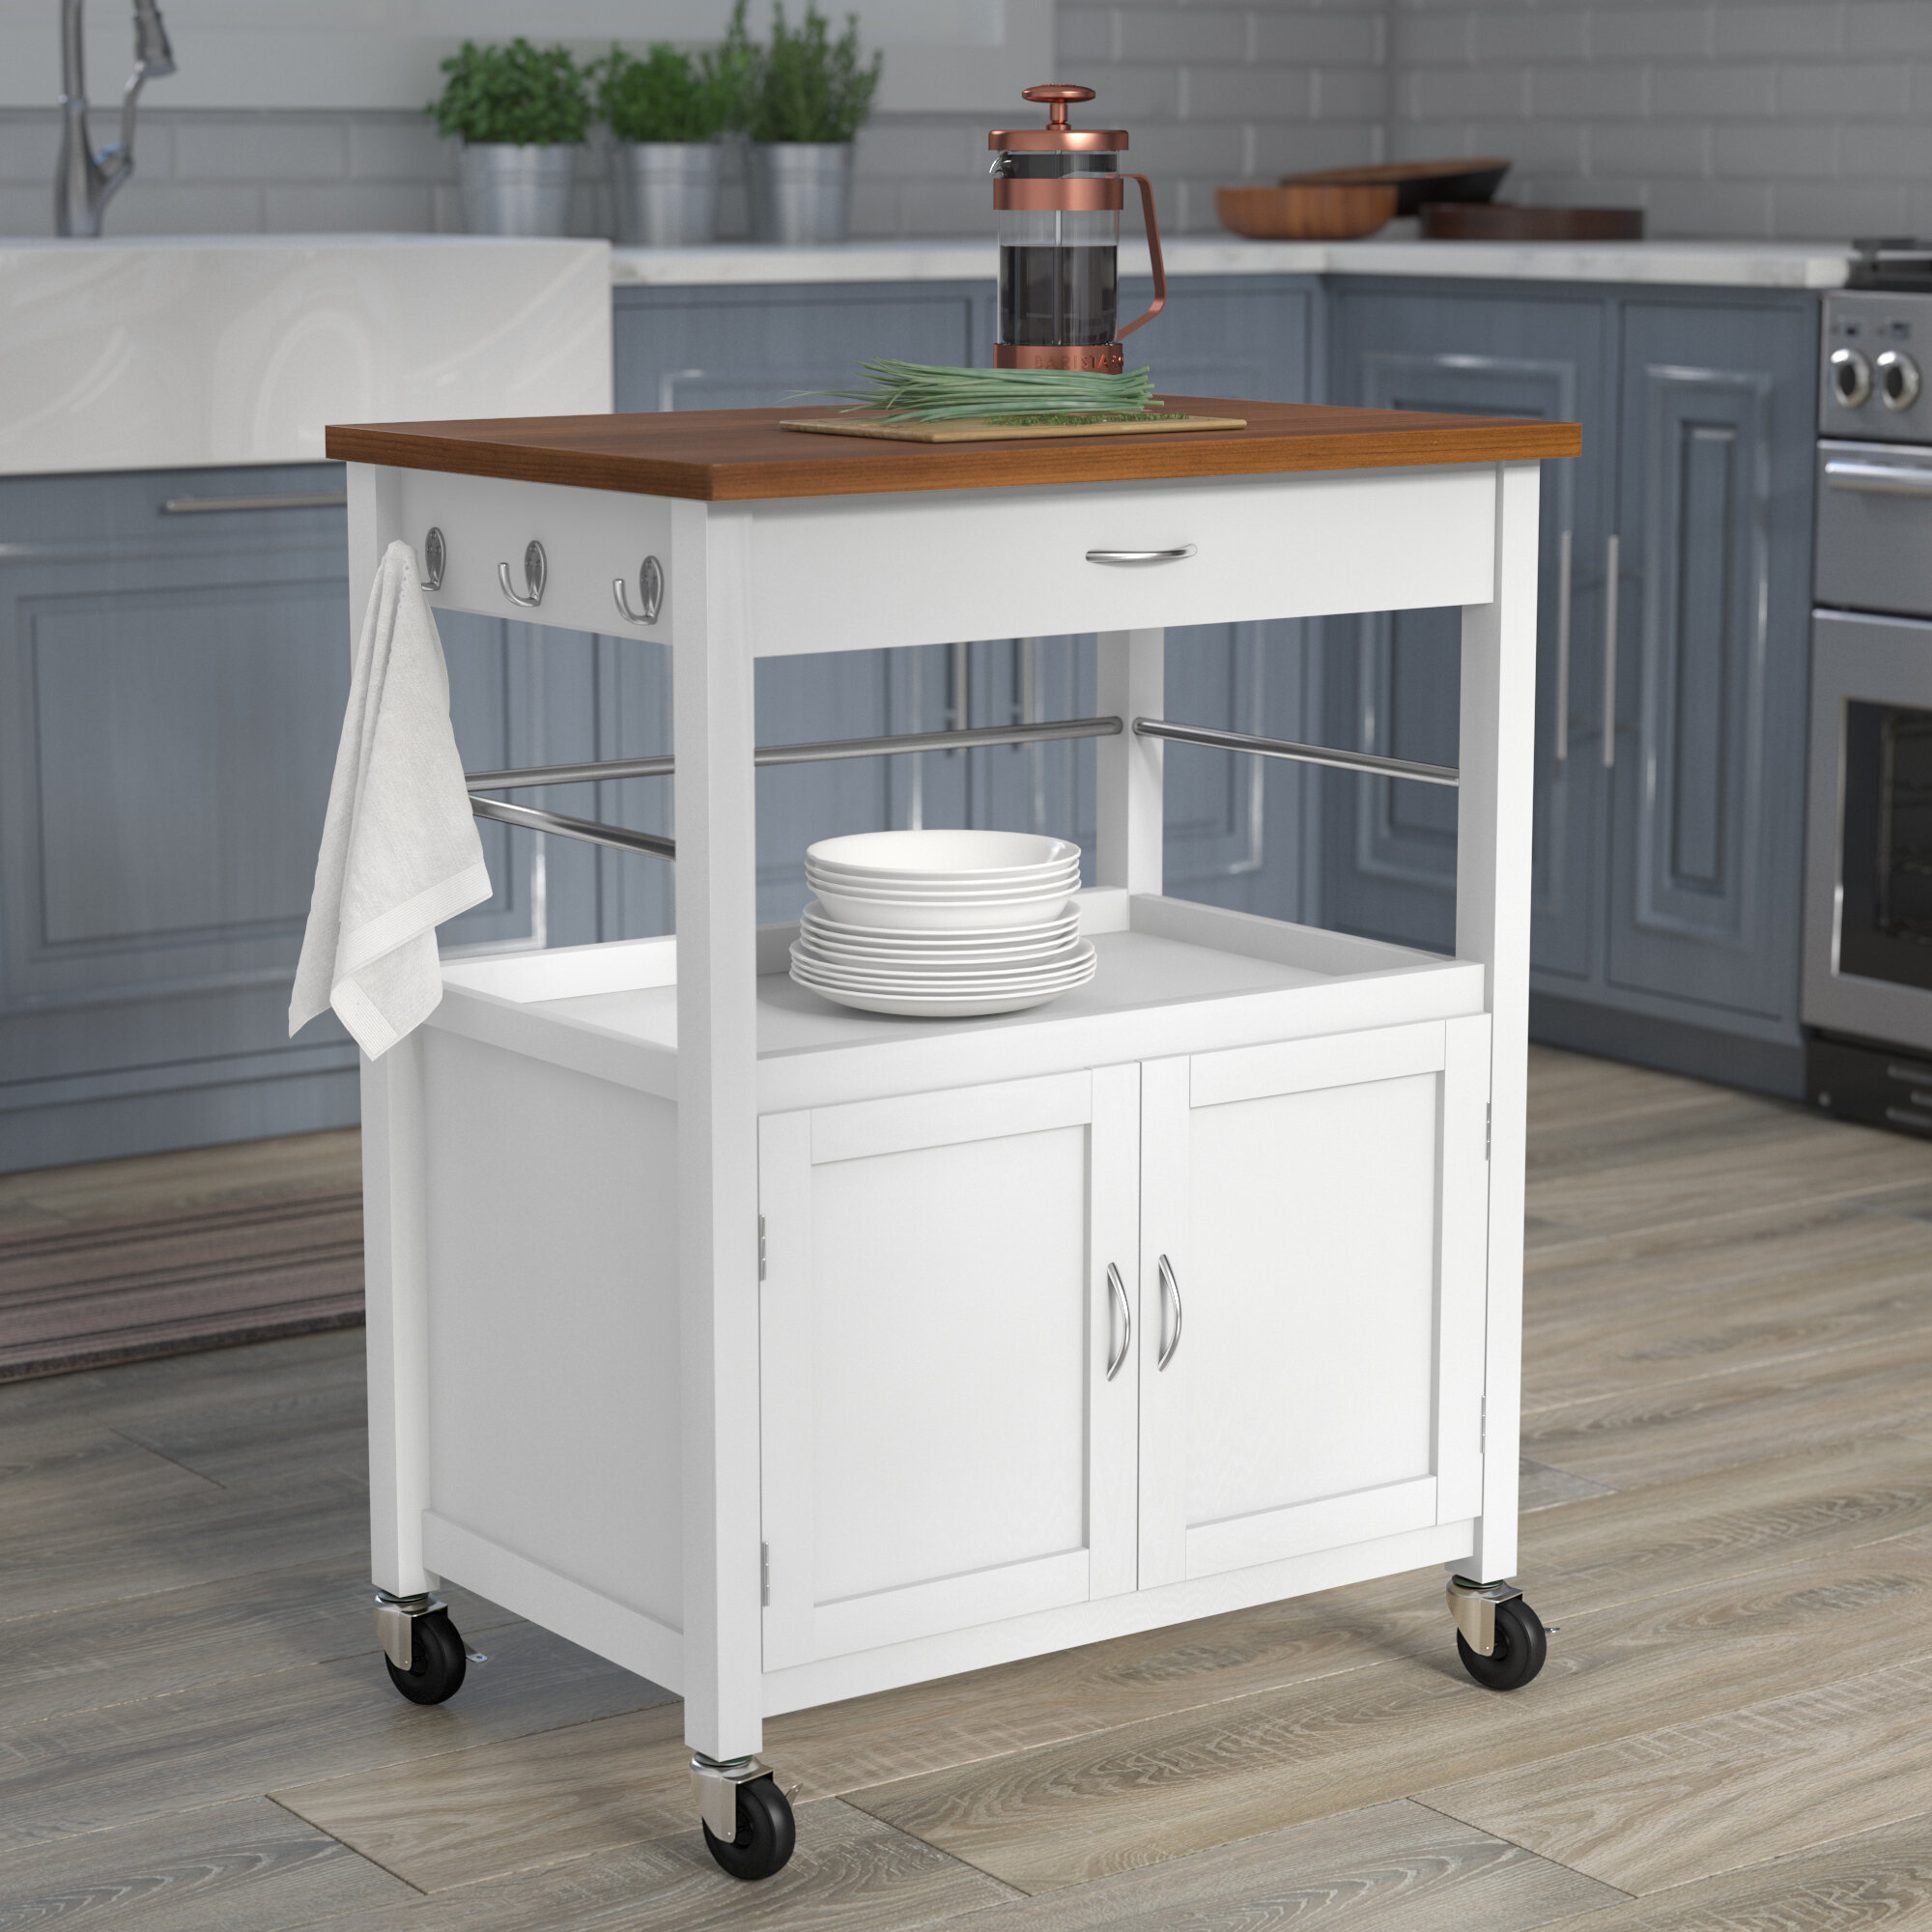 Gentil Andover Mills Kibler Kitchen Island Cart With Natural Butcher Block Bamboo  Top U0026 Reviews | Wayfair